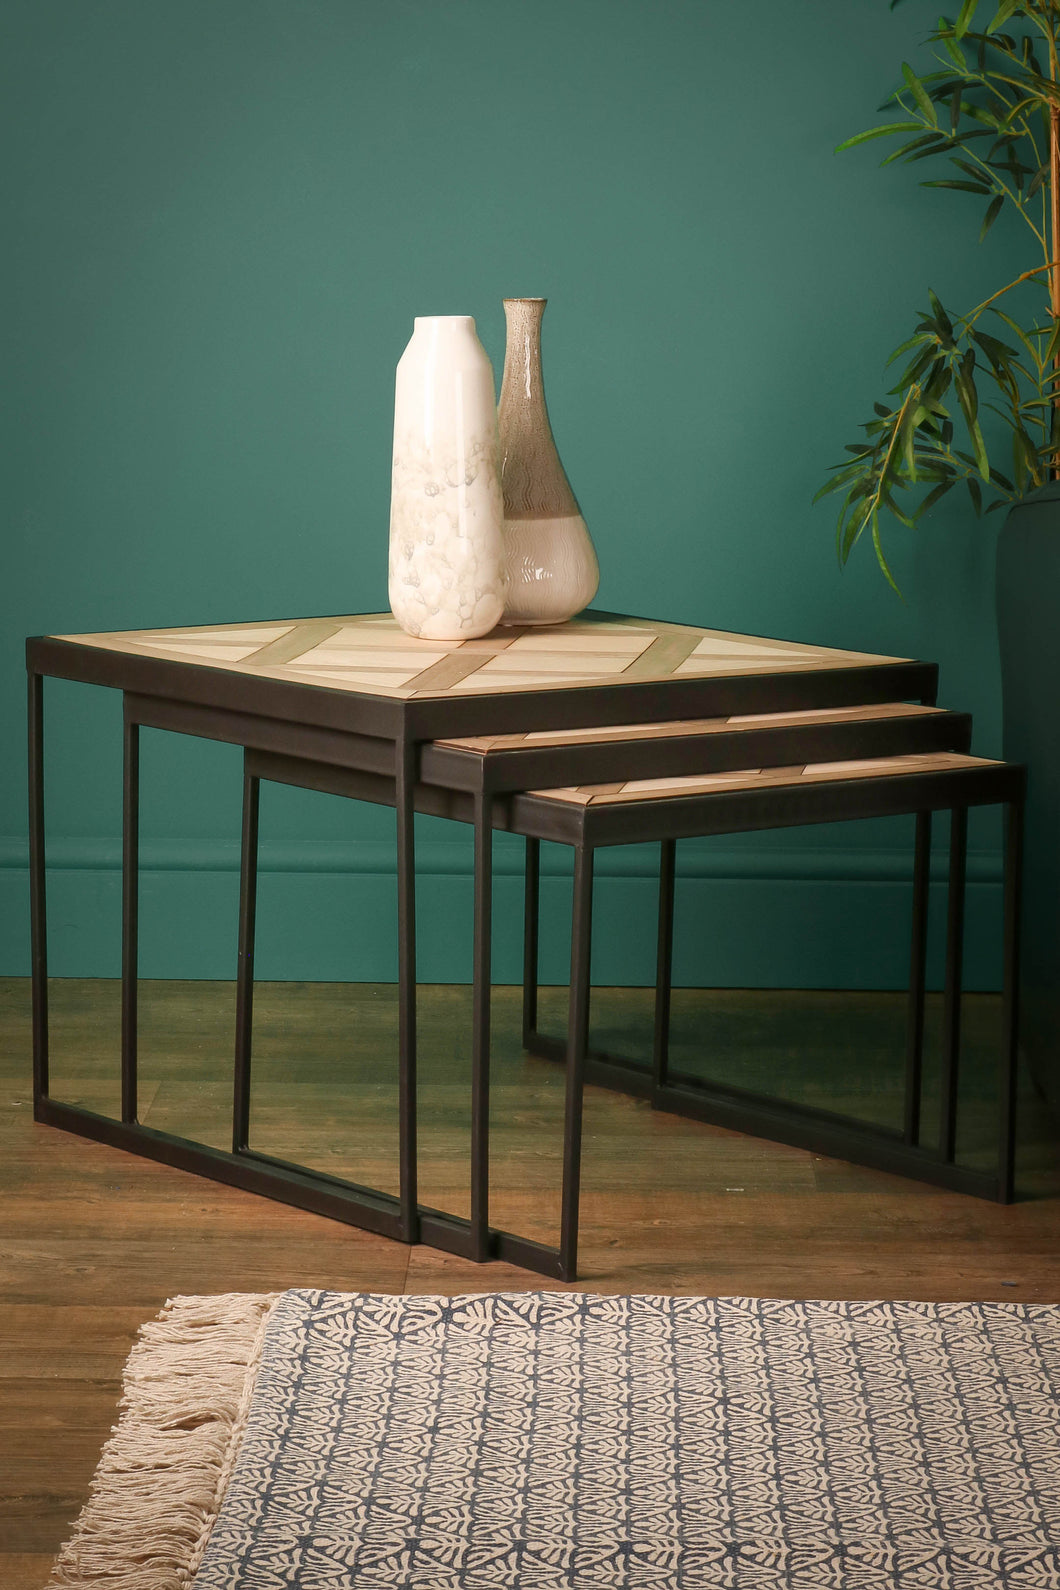 Nest of 3 Side Tables Occasional Coffee Tables Geometric Pattern Industrial Style - Whaleycorn